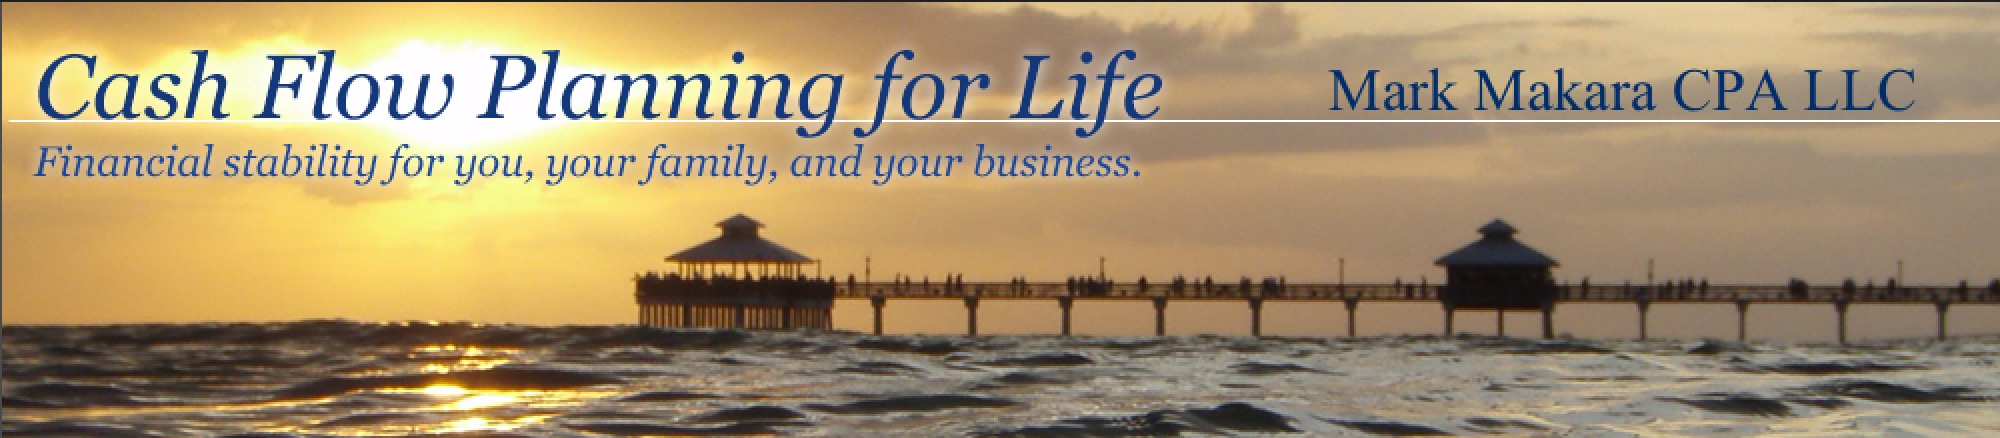 Cash Flow Planning for Life - Helping you reach your personal & professional financial goals.